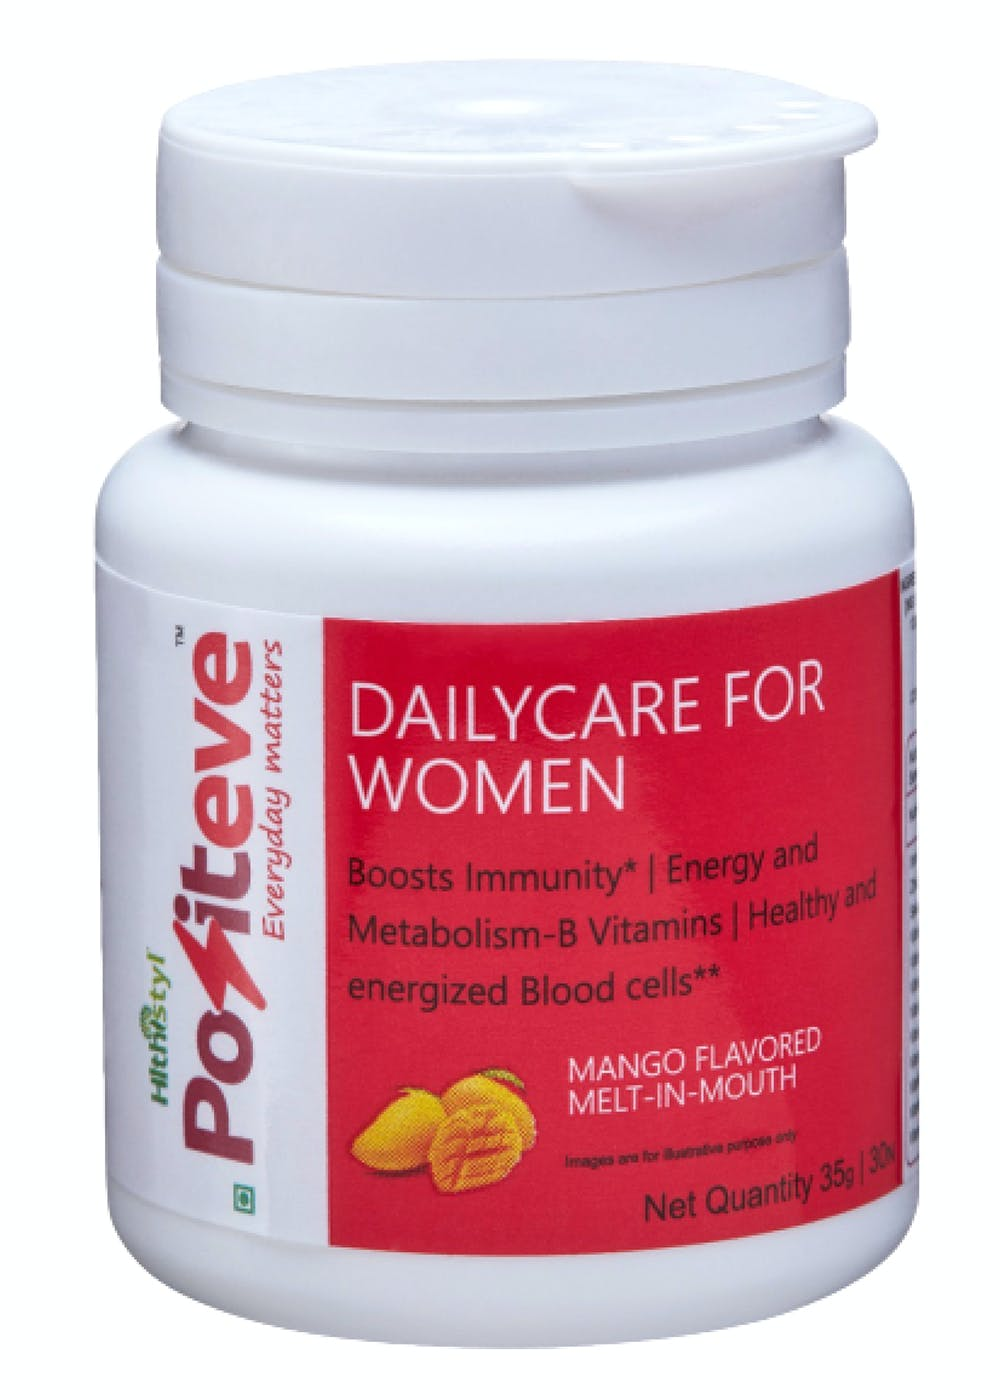 PositEVE Stay Active & Strong, All Day- Mango- Daily nutrition for Women